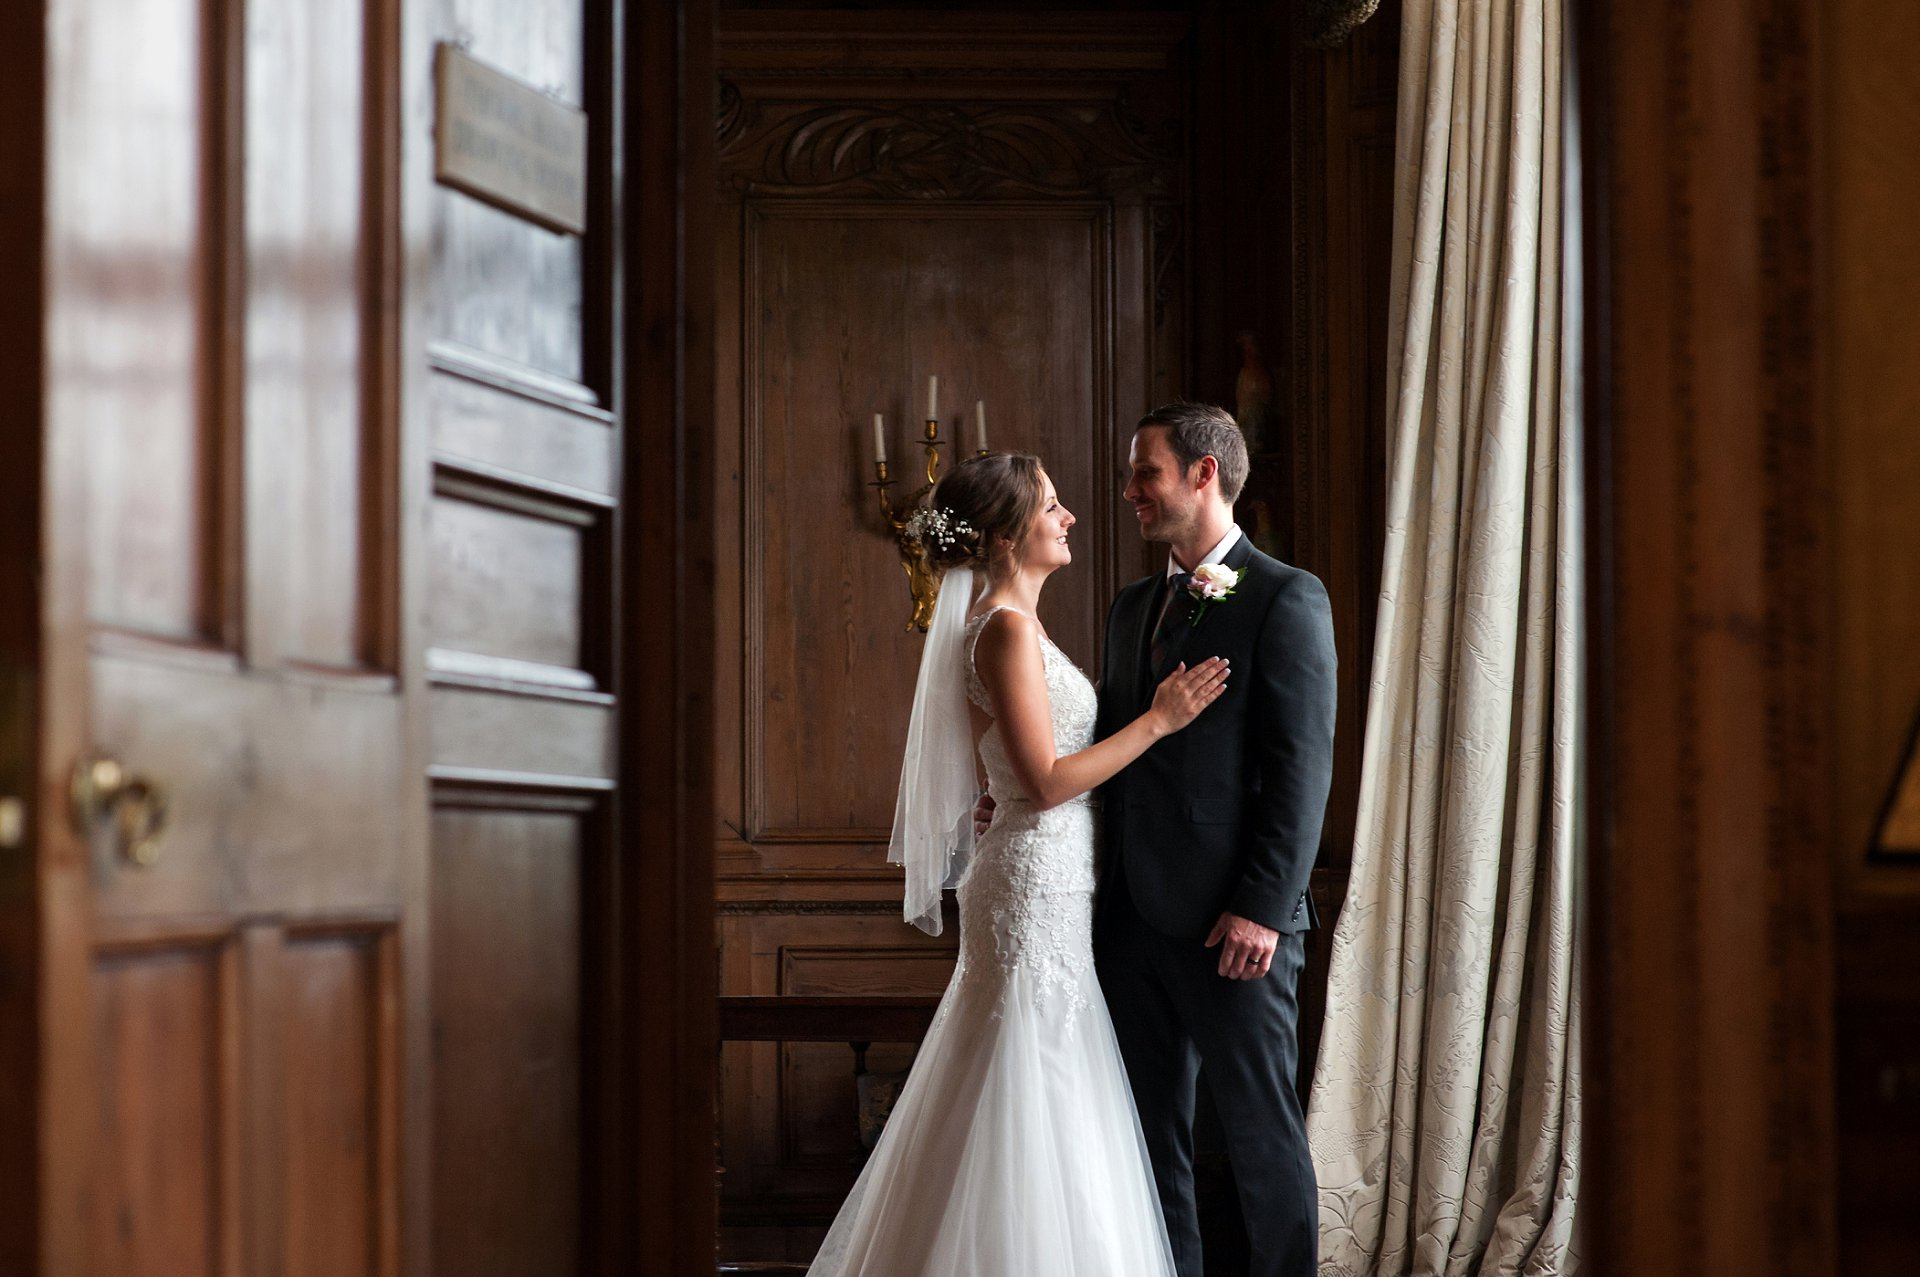 A bride and groom in the Thorpe Hall drawing room at Leeds Castle after their church wedding blessing - the setting is so elegant and classic and a perfect place for wedding photographs by Emma Duggan